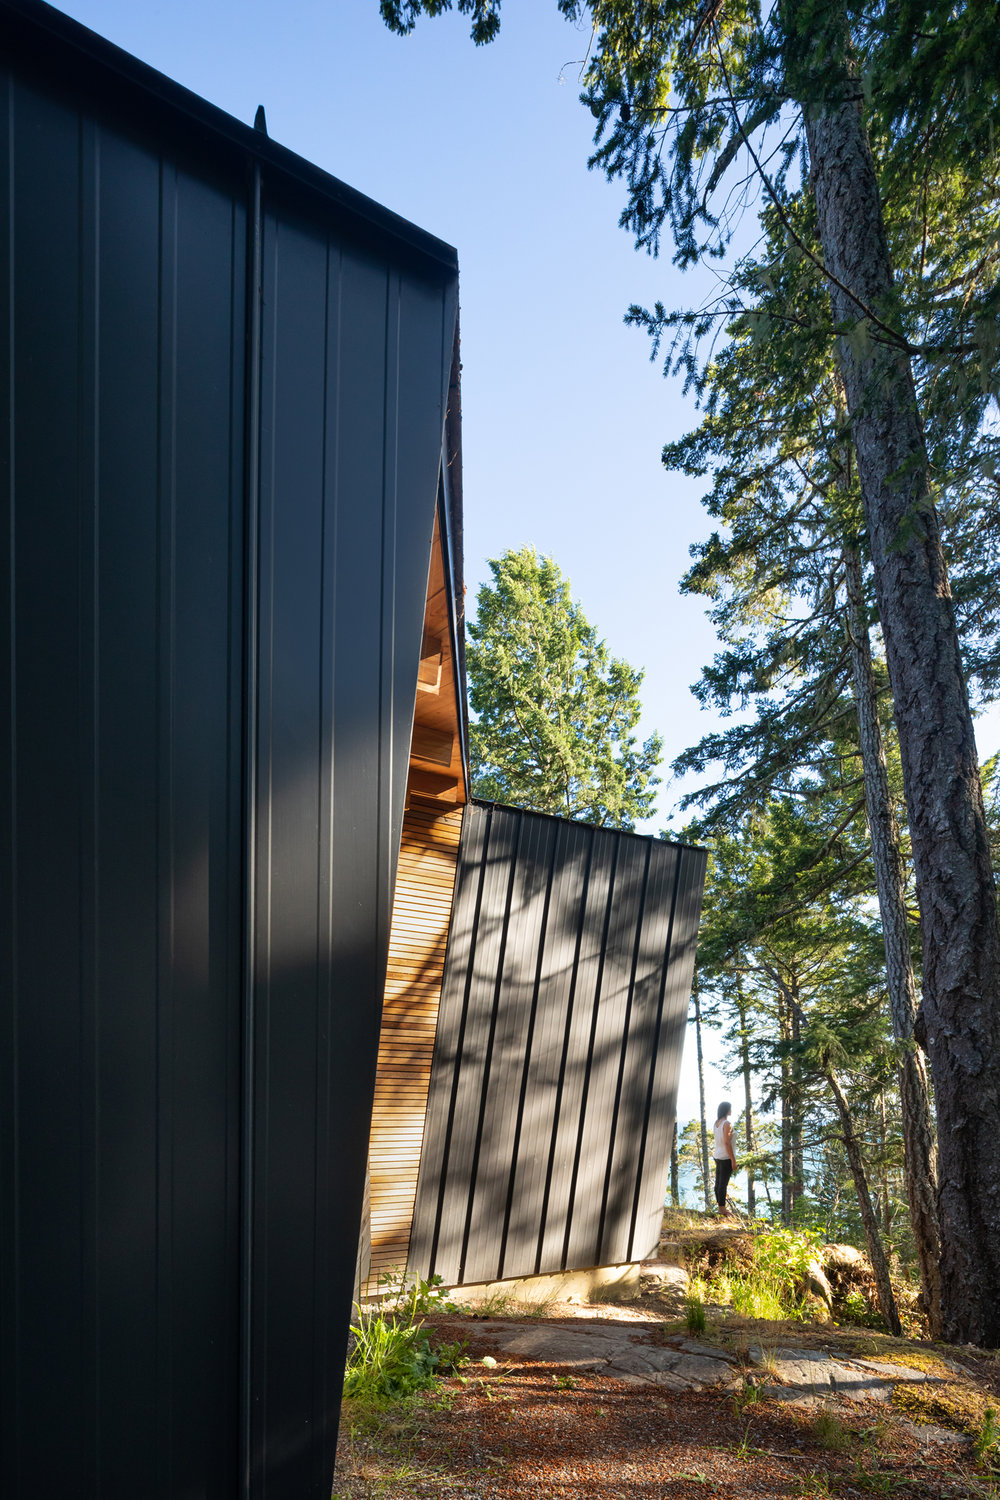 The dark exterior helps the structure blend into the landscape and gives it a modern-industrial appearance